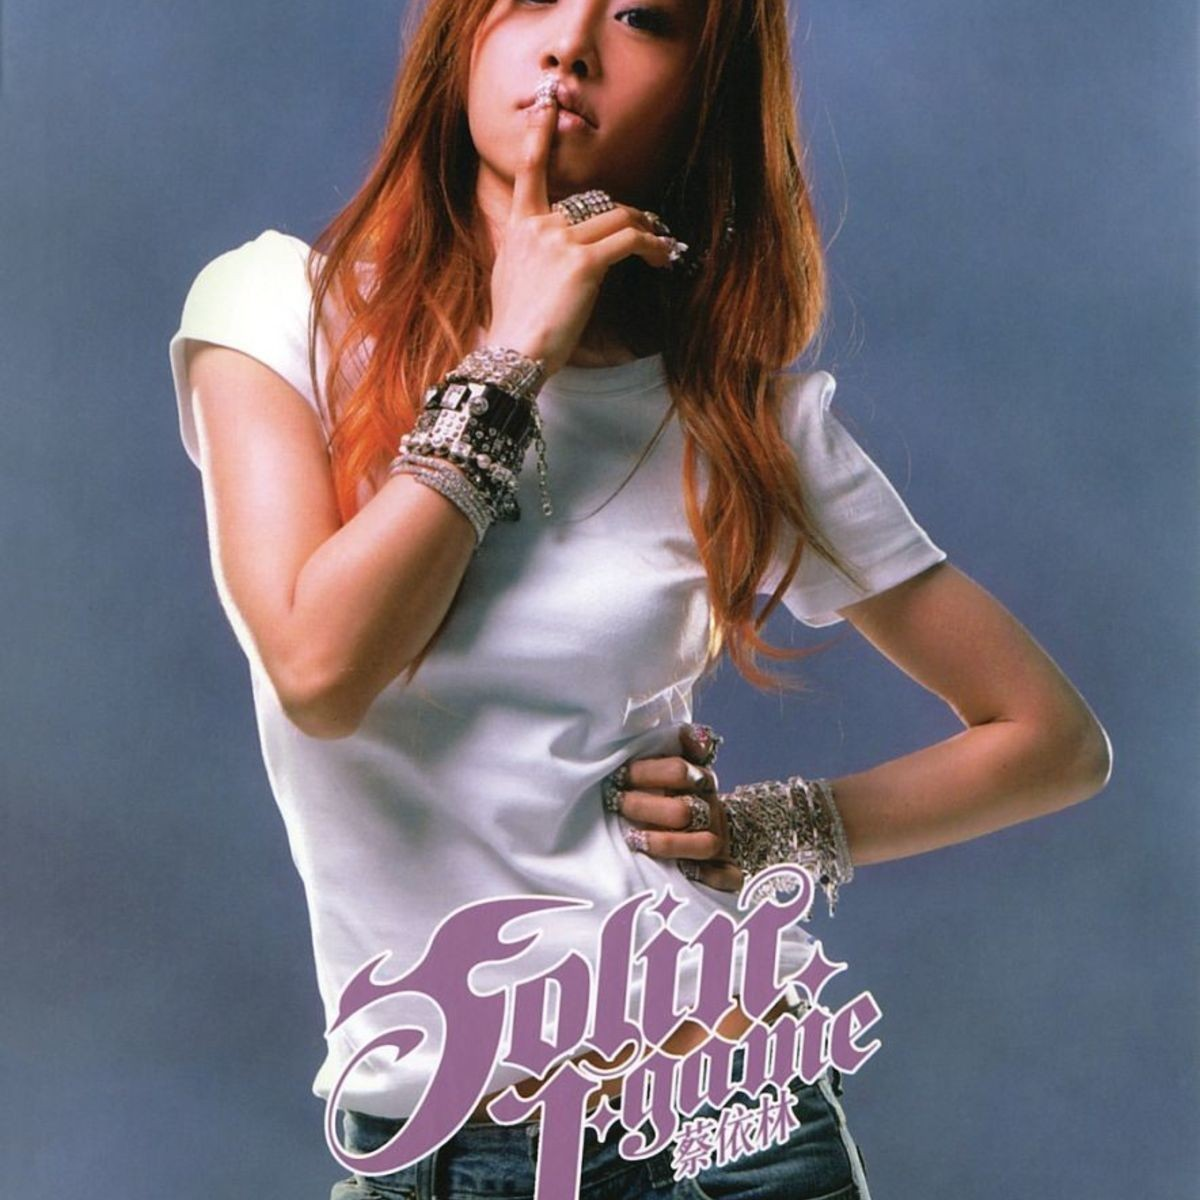 Jolin Tsai (蔡依林) – J-Game (野蠻遊戲) [FLAC / 24bit Lossless / WEB] [2005.04.25]